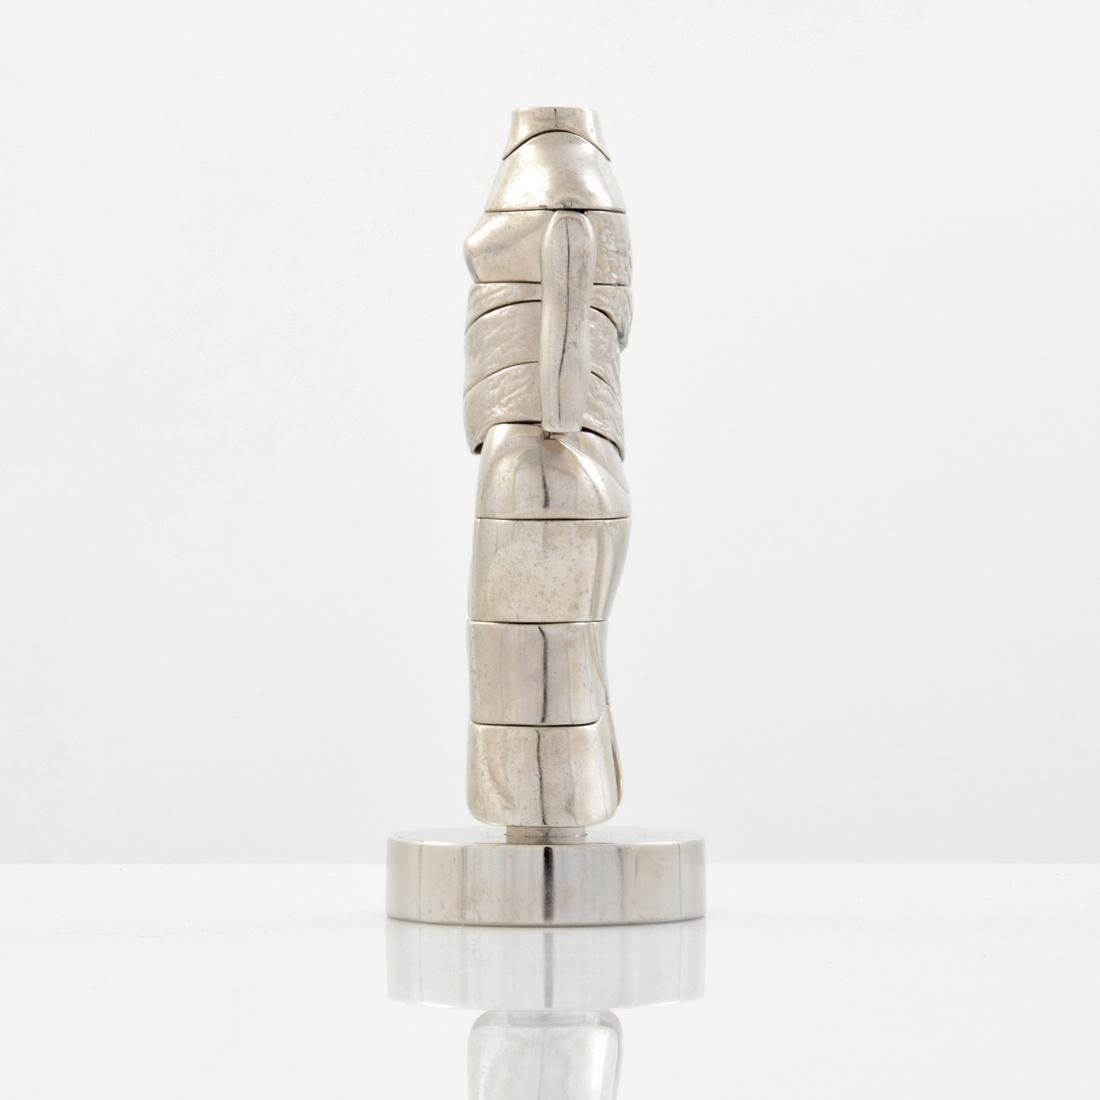 Miguel Berrocal MINI CARIATIDE Sculpture/Puzzle - 5